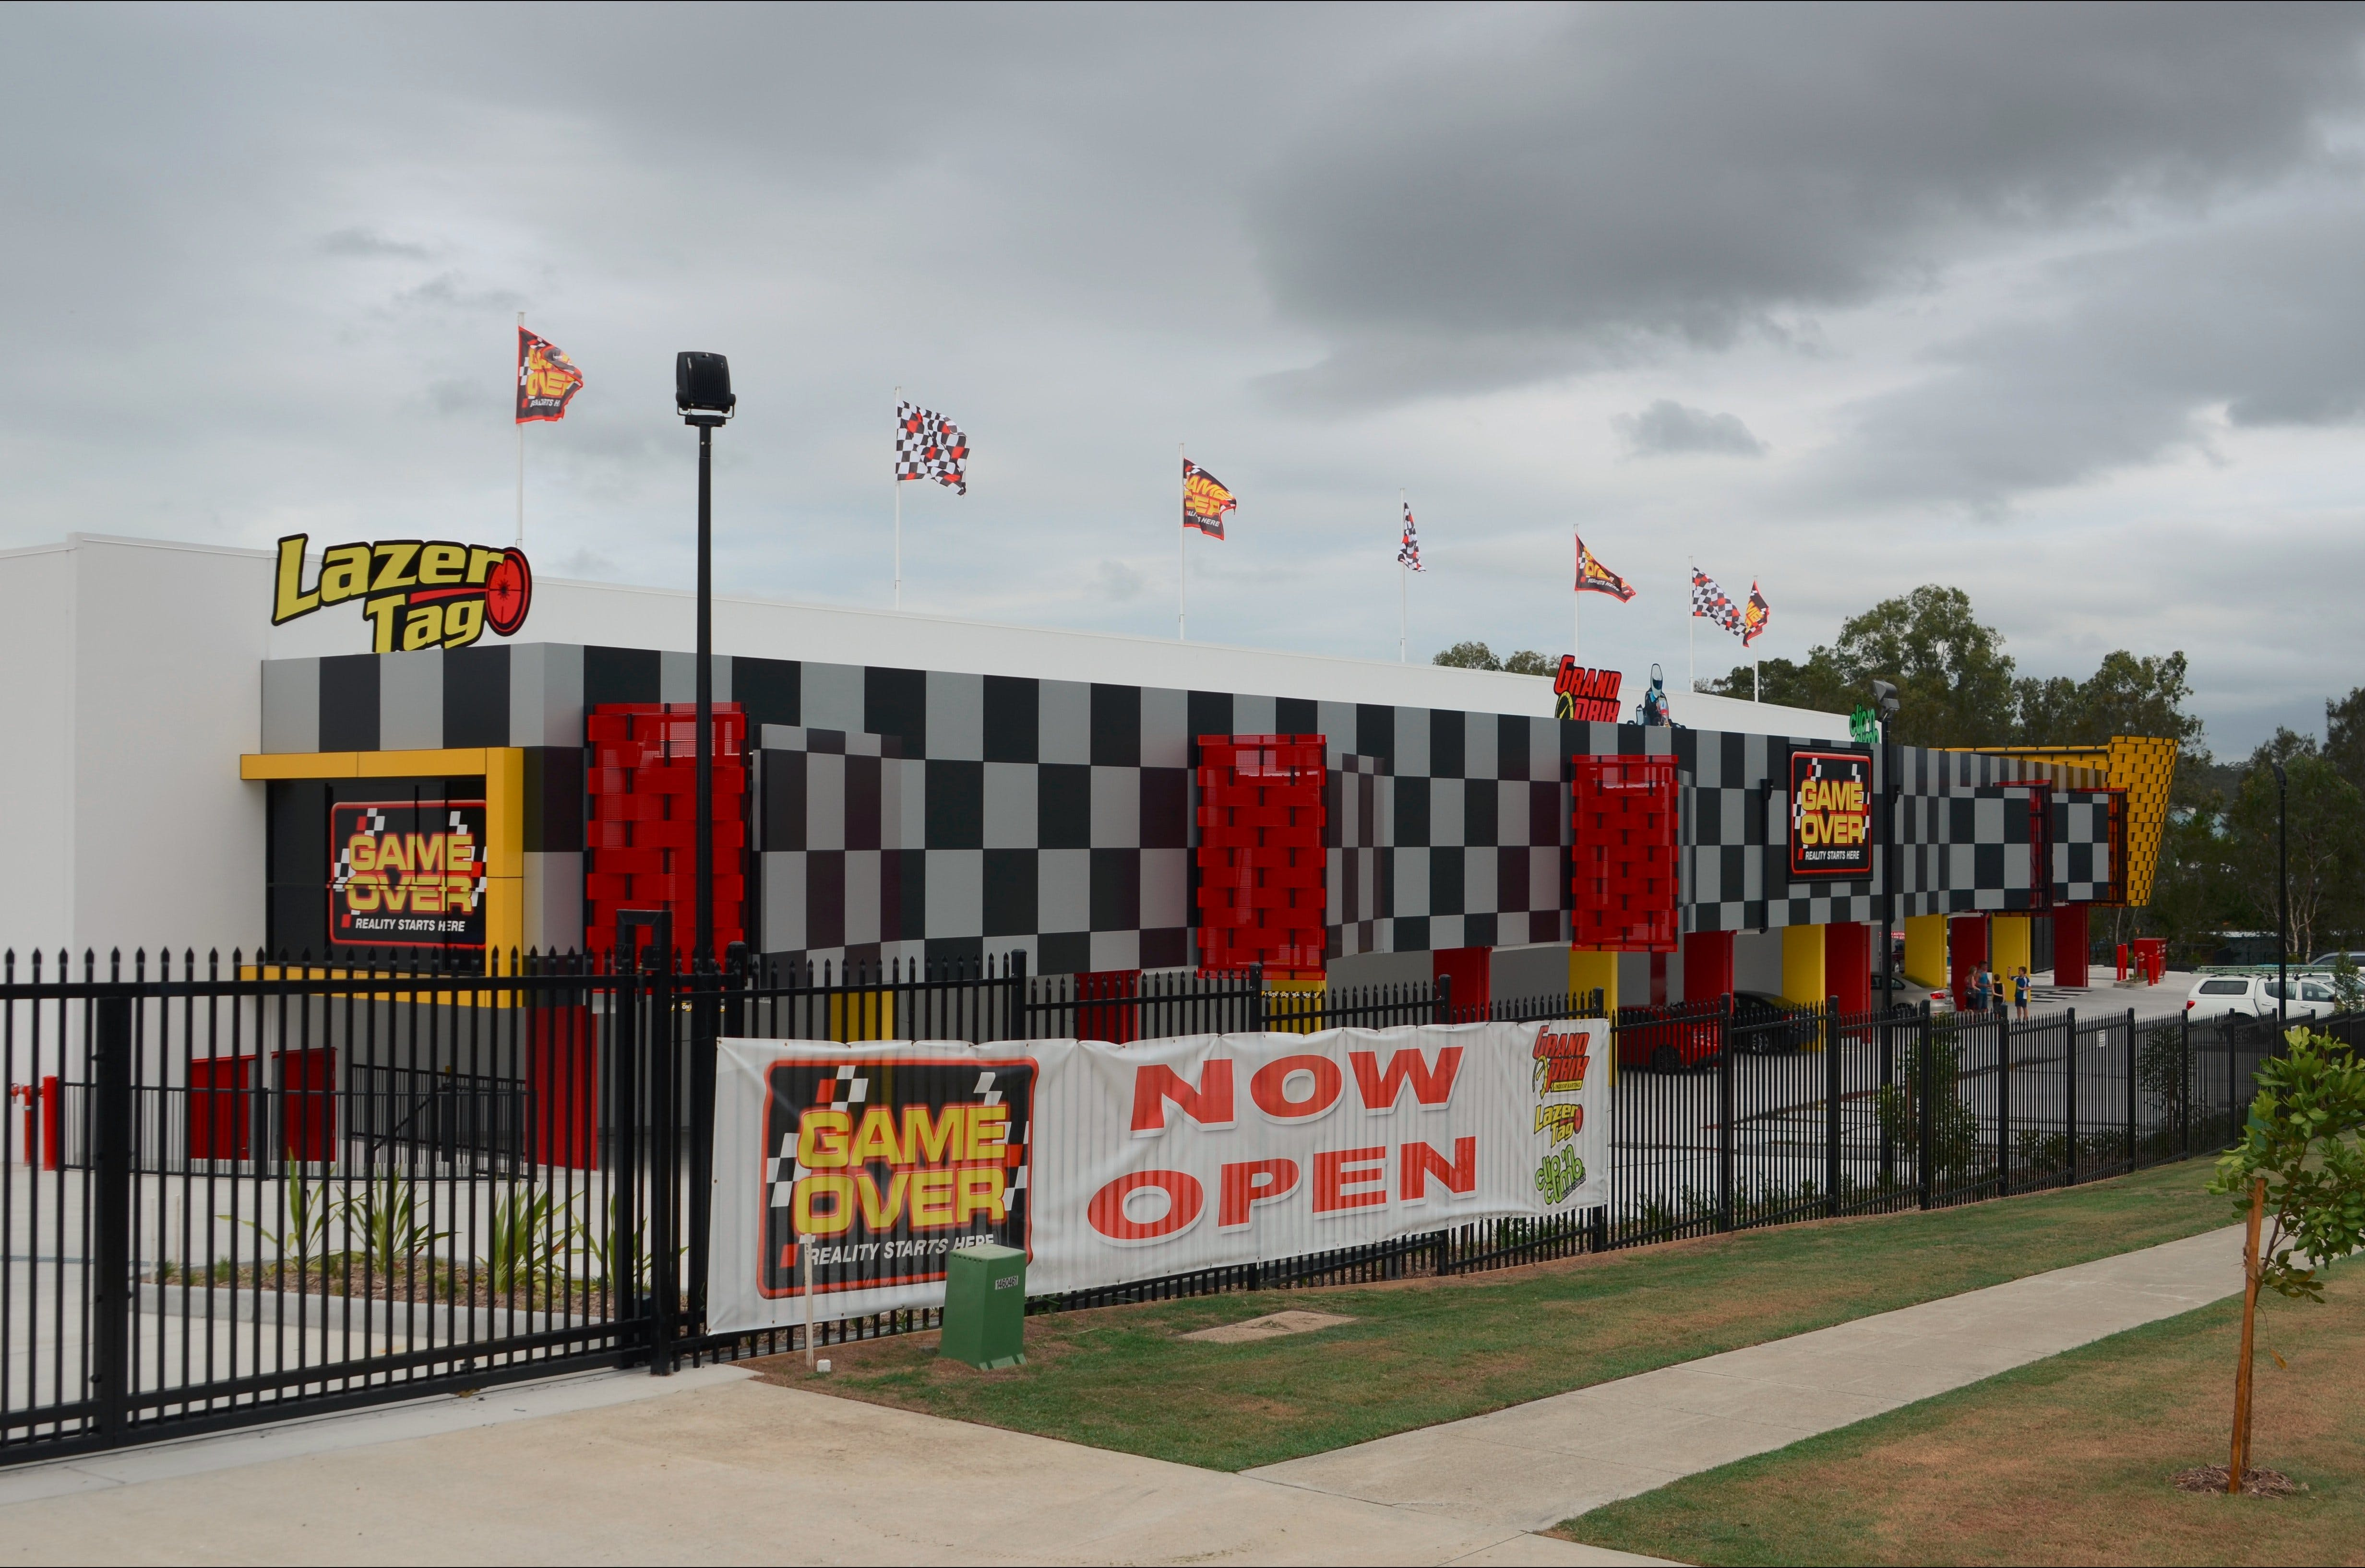 Game Over Indoor Go Karting Adventure Climbing Walls and Lazer Tag Centre - Accommodation Melbourne